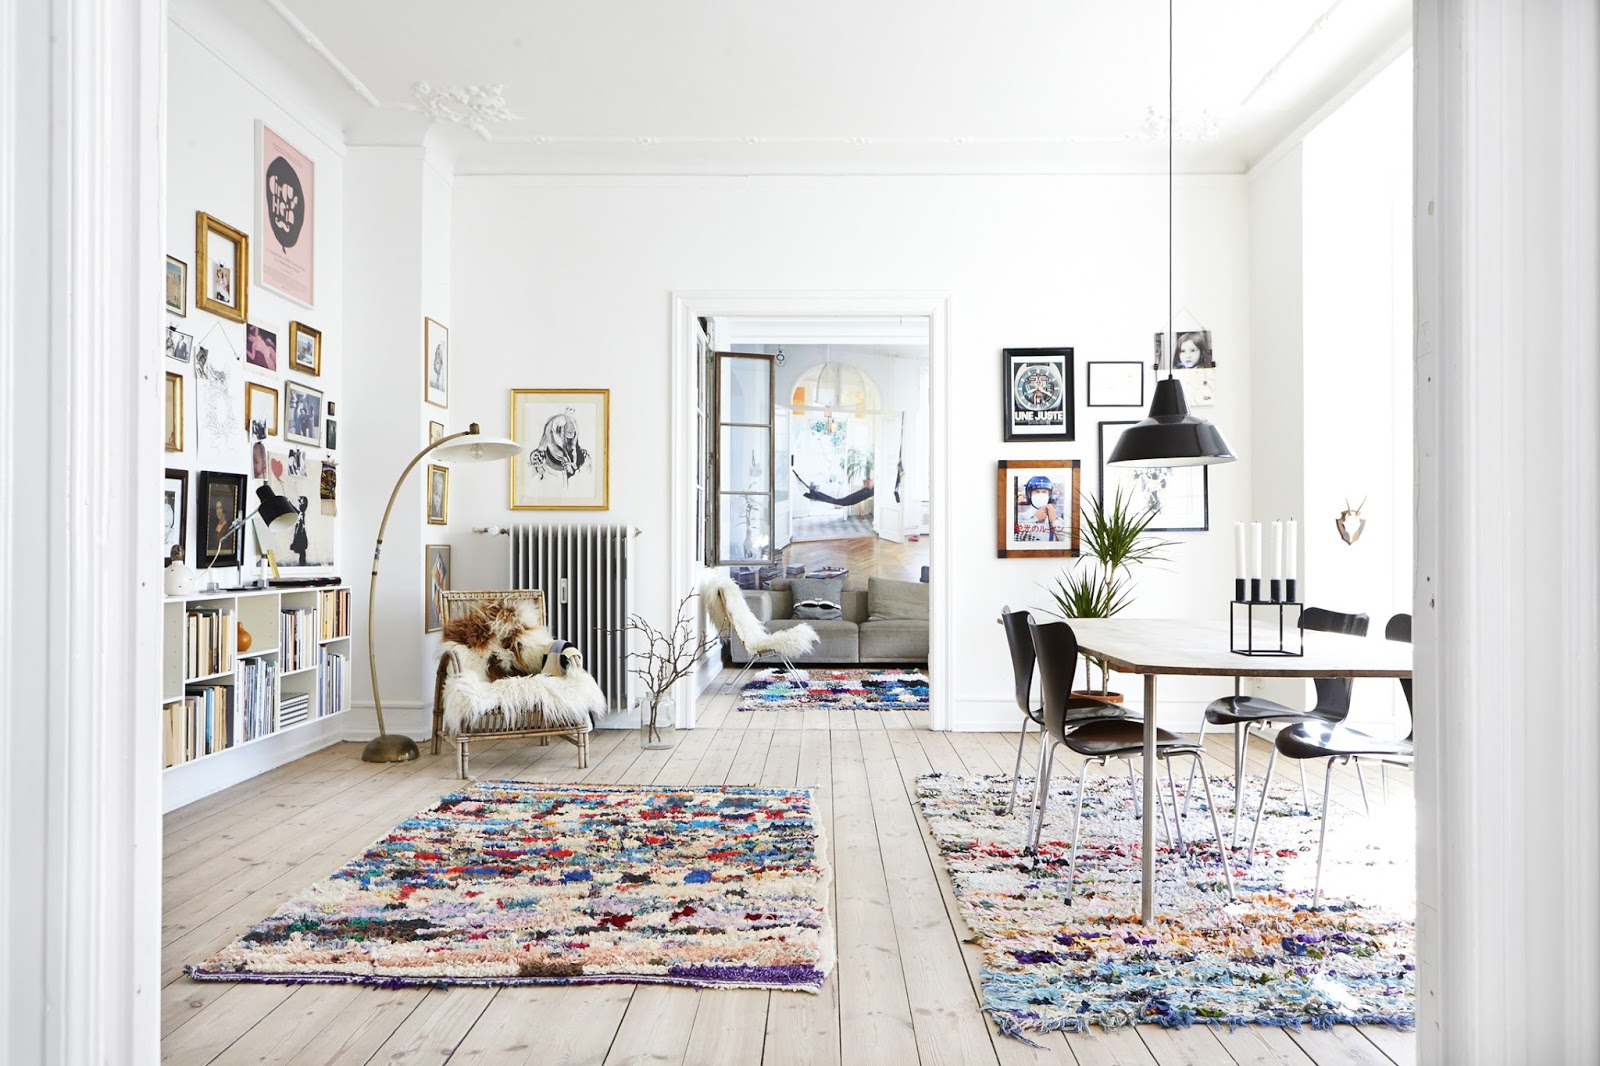 bohemian scandinavian apartment with moroccan rugs, wall art and design furniture